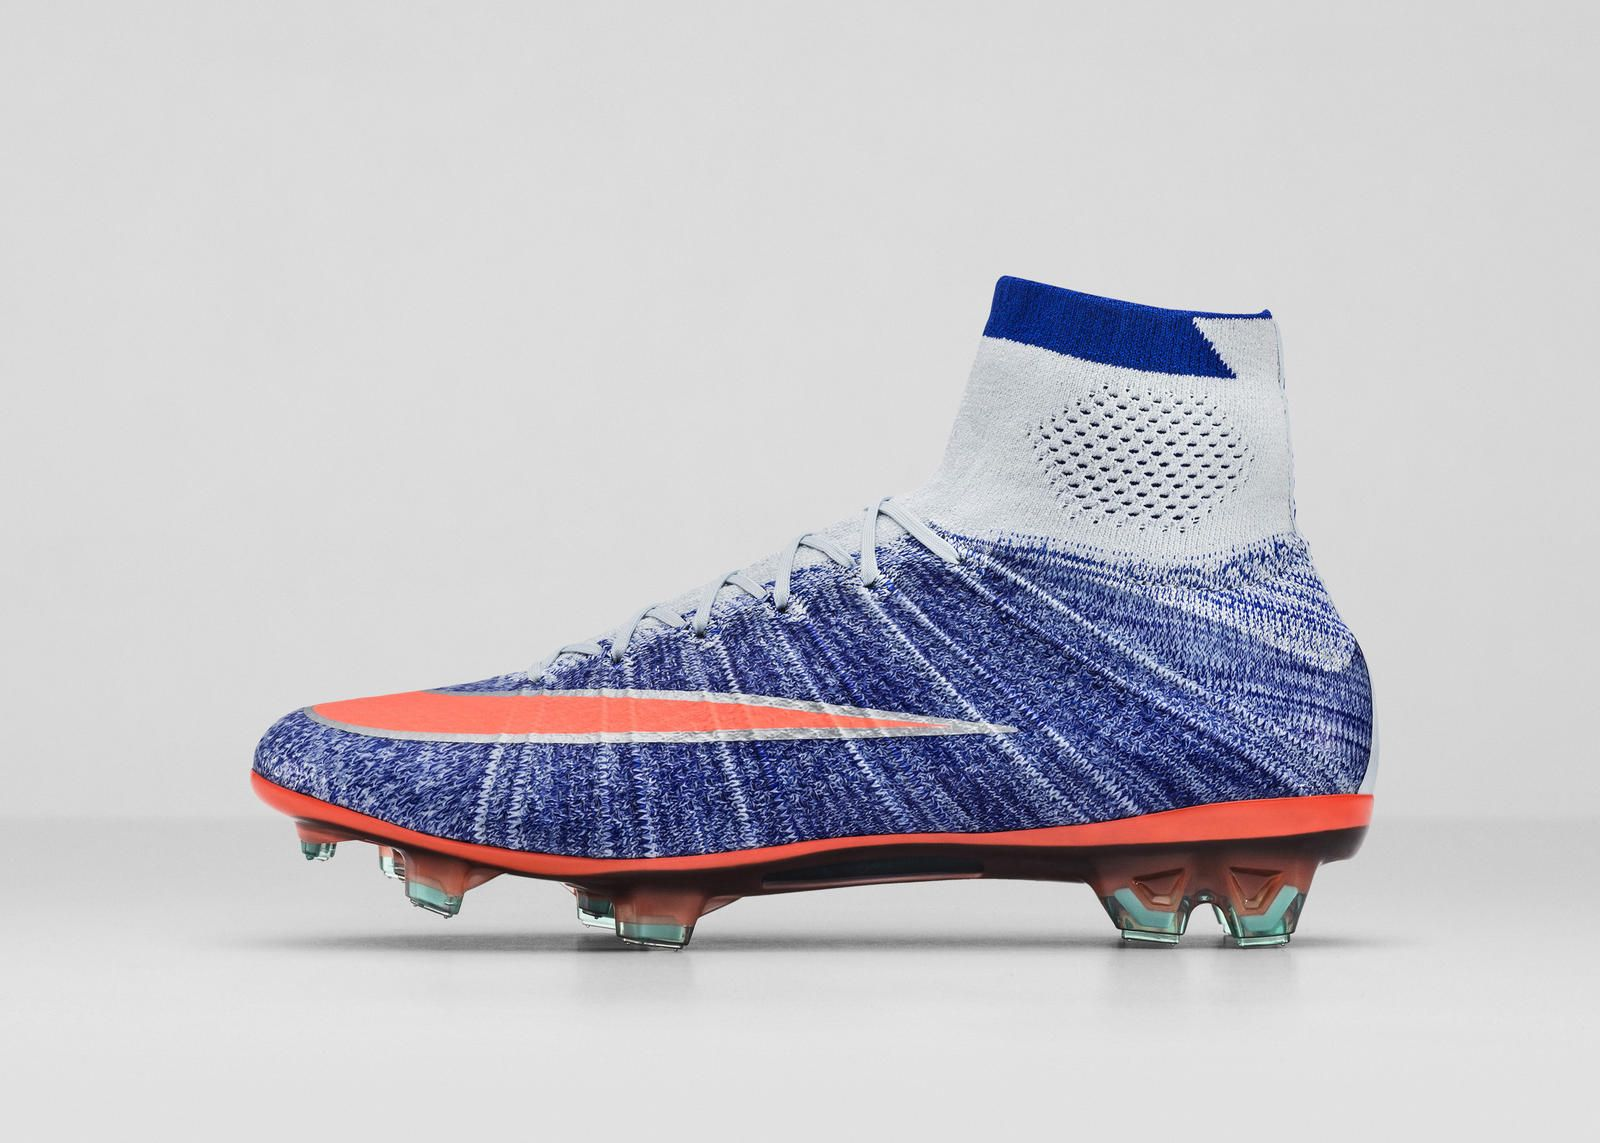 7775f3da55a1d Nike News - NIKE SOCCER UNVEILS ALL-NEW WOMEN S CLEAT PACK FOR 2016